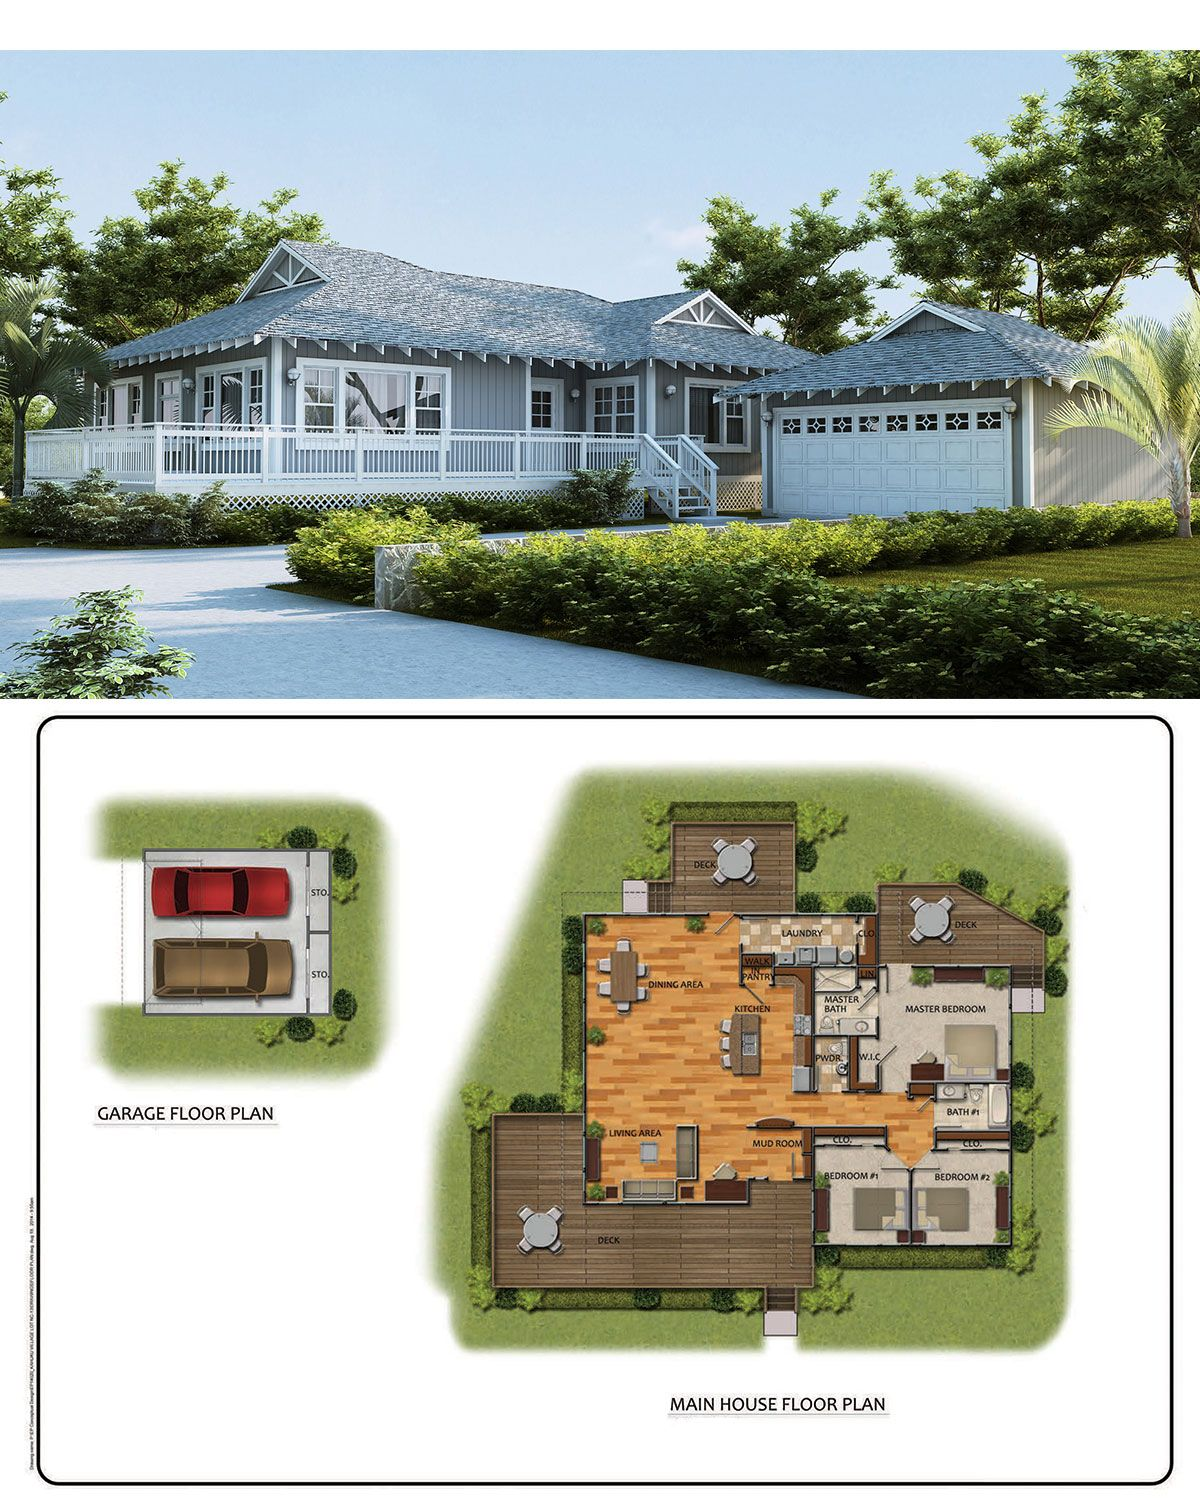 New Homes For Sale On The North Shore Of Oahu, Hawaii. Located In Kahuku